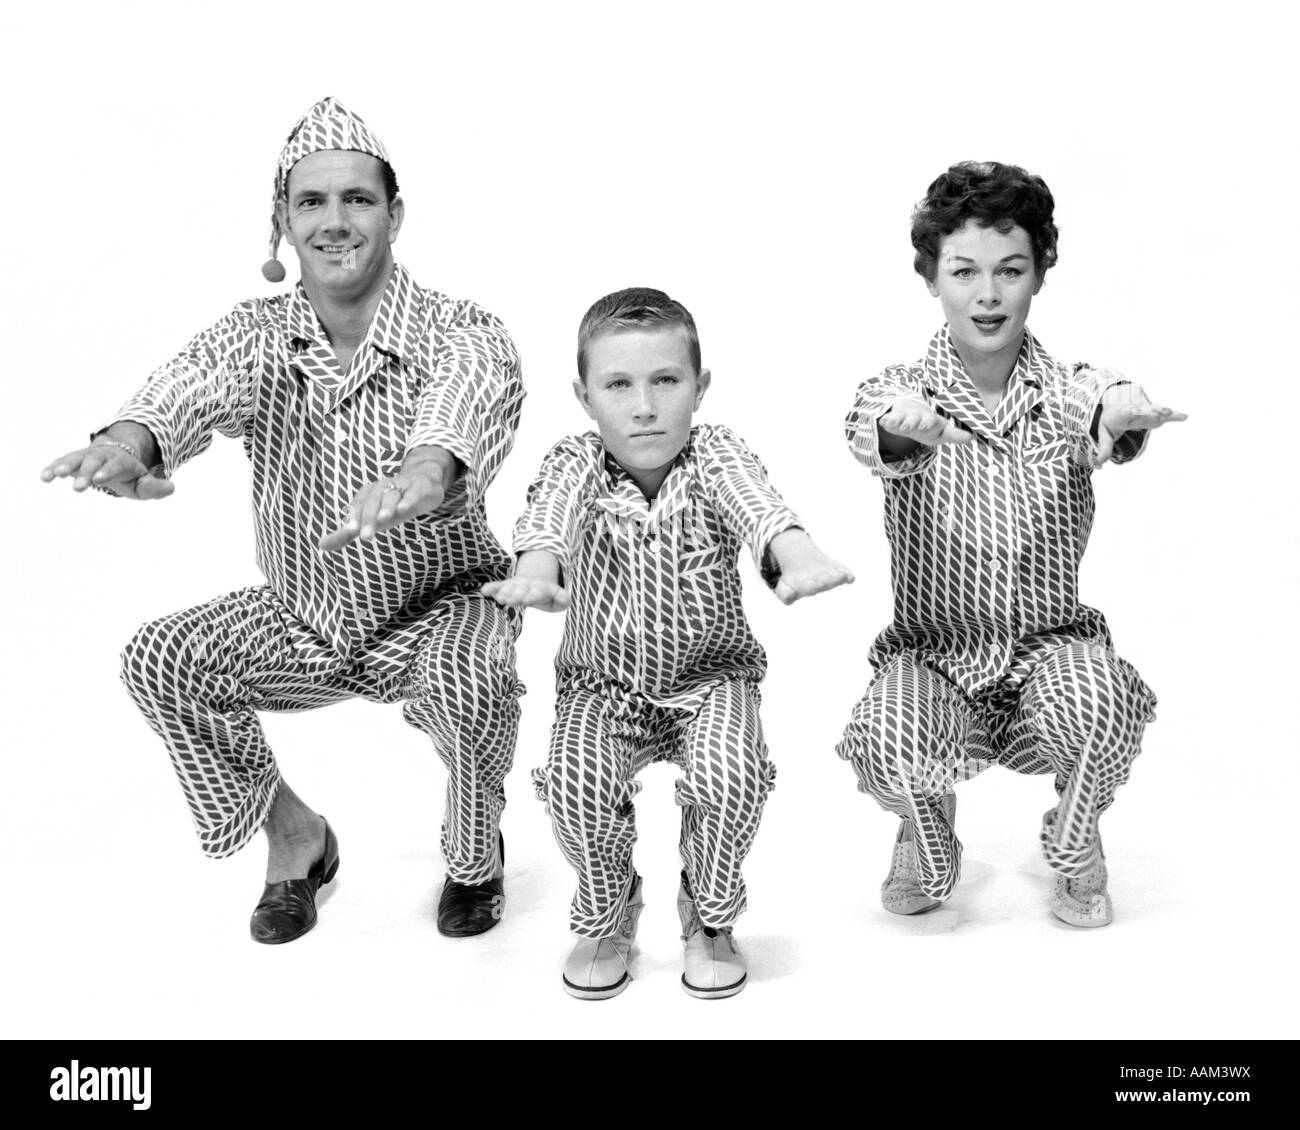 1950s FAMILY OF 3 IN PAJAMAS DOING KNEE BENDS FACING CAMERA - Stock Image